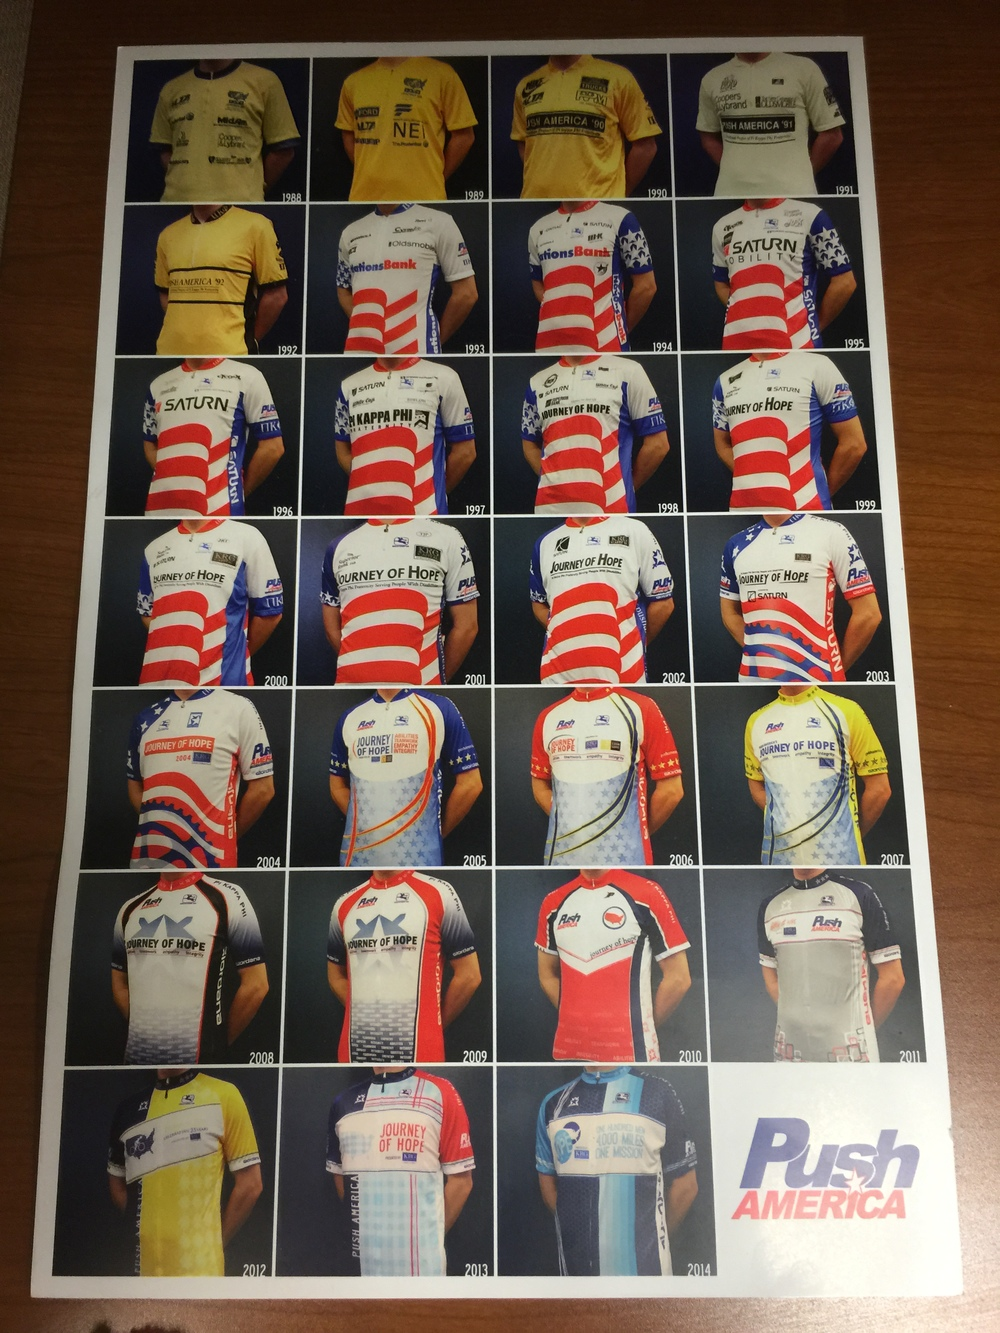 Journey of Hope jerseys throughout the years